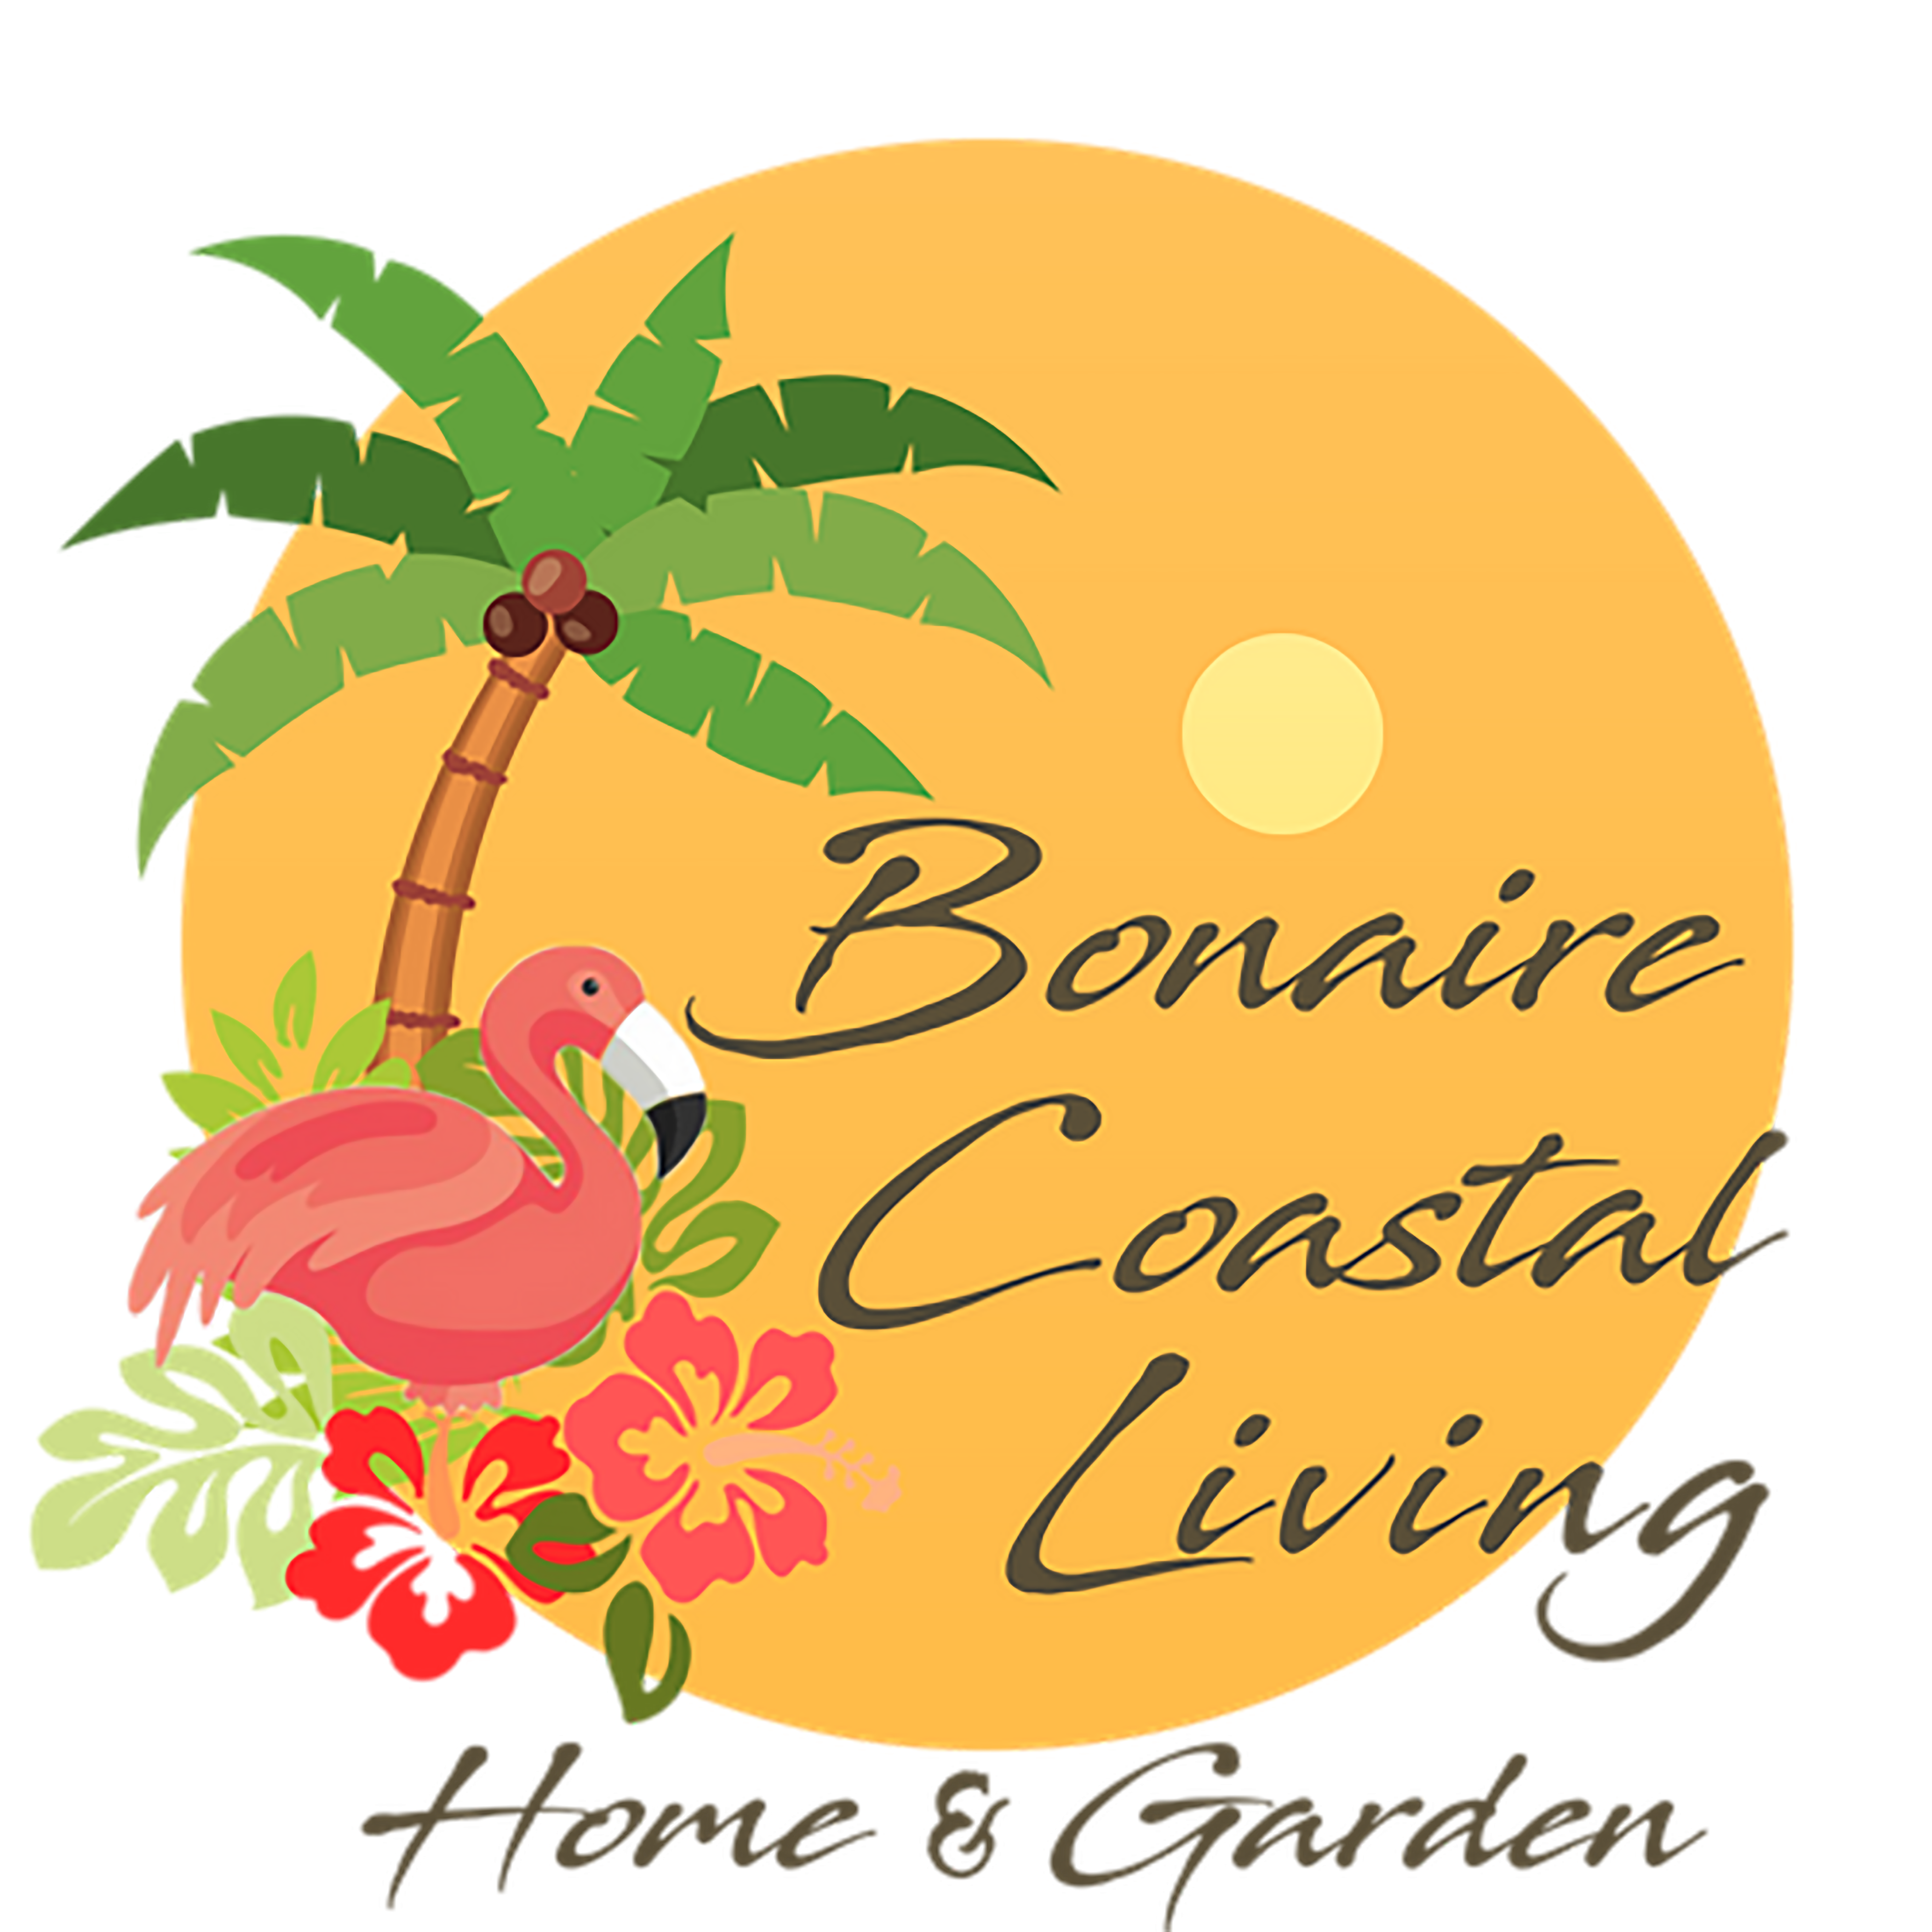 Bonaire Coastal Living